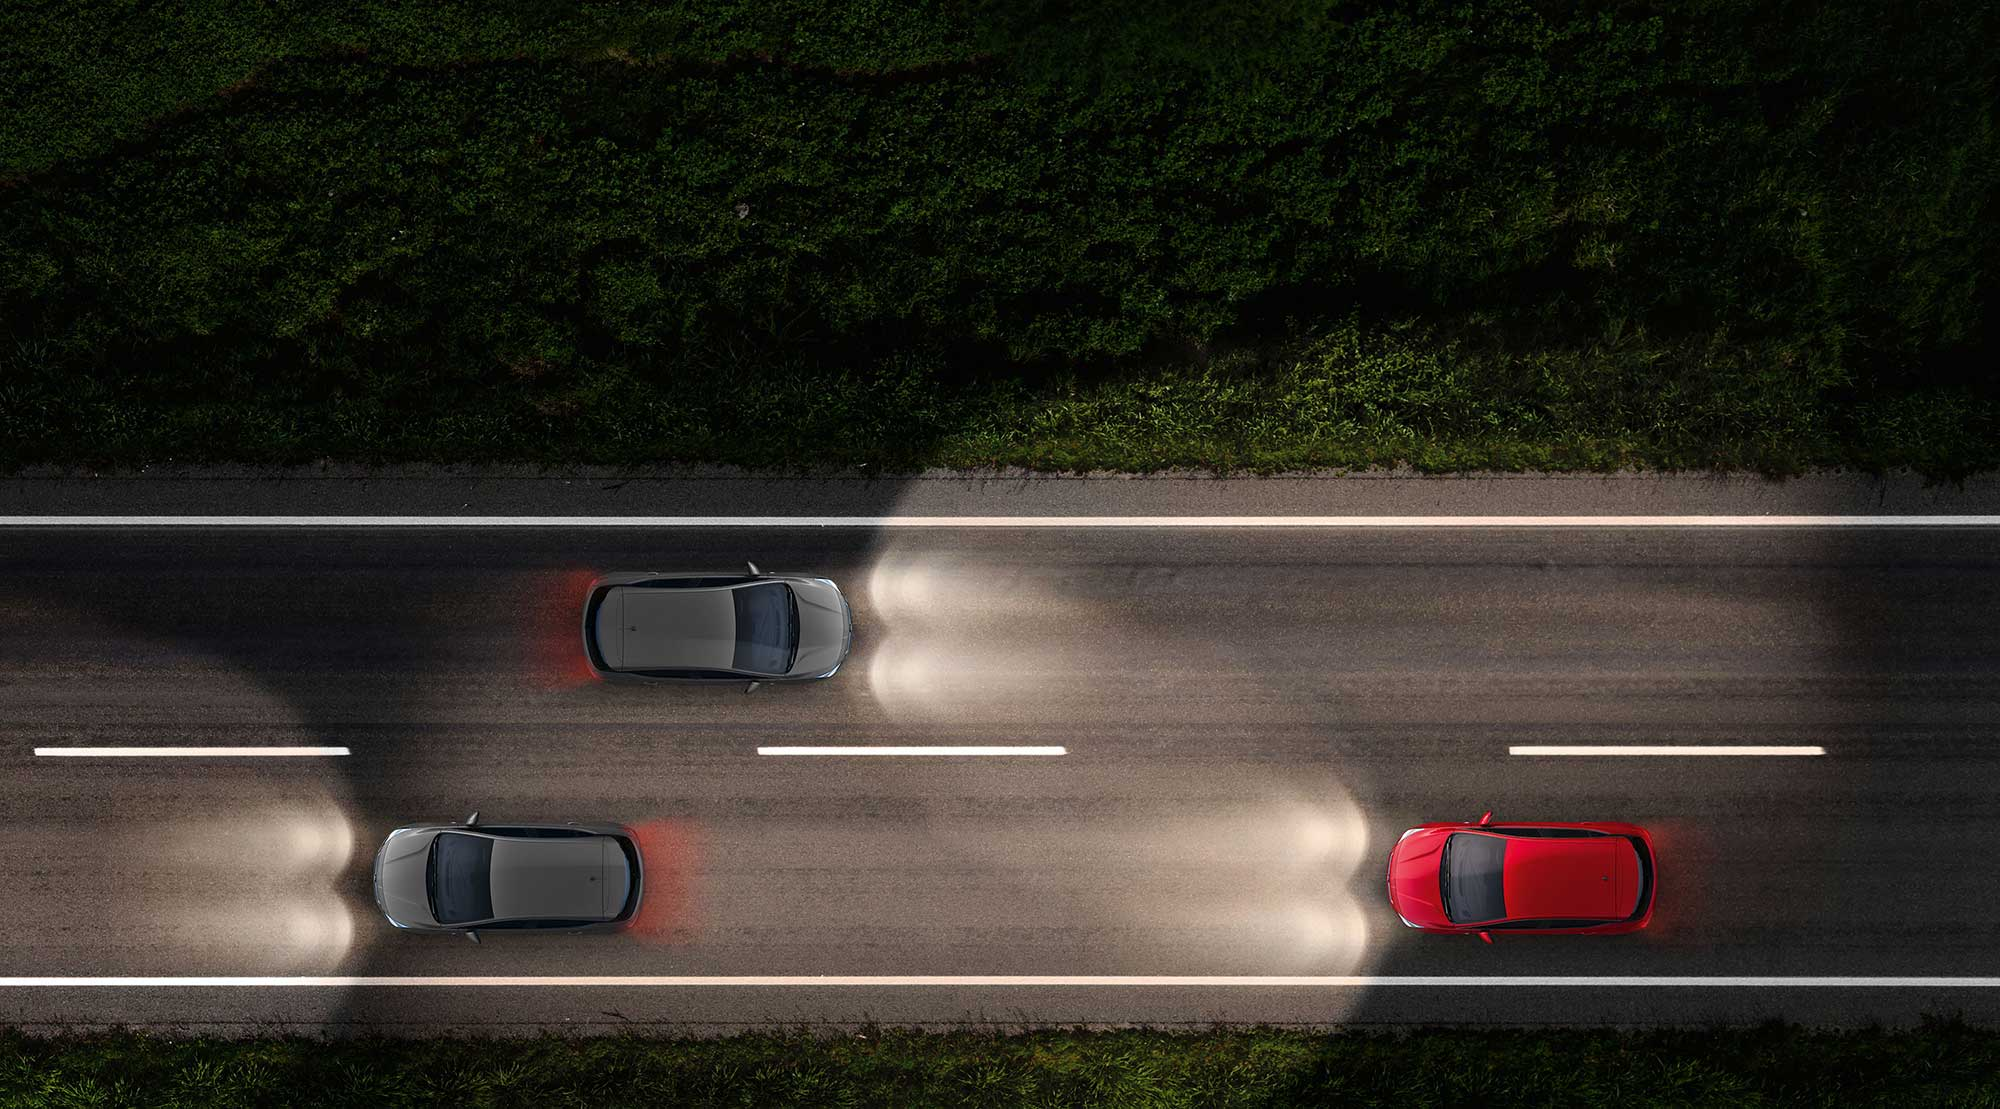 Top-down view of the Vauxhall Astra car displaying its Intelilux Headlights technology.